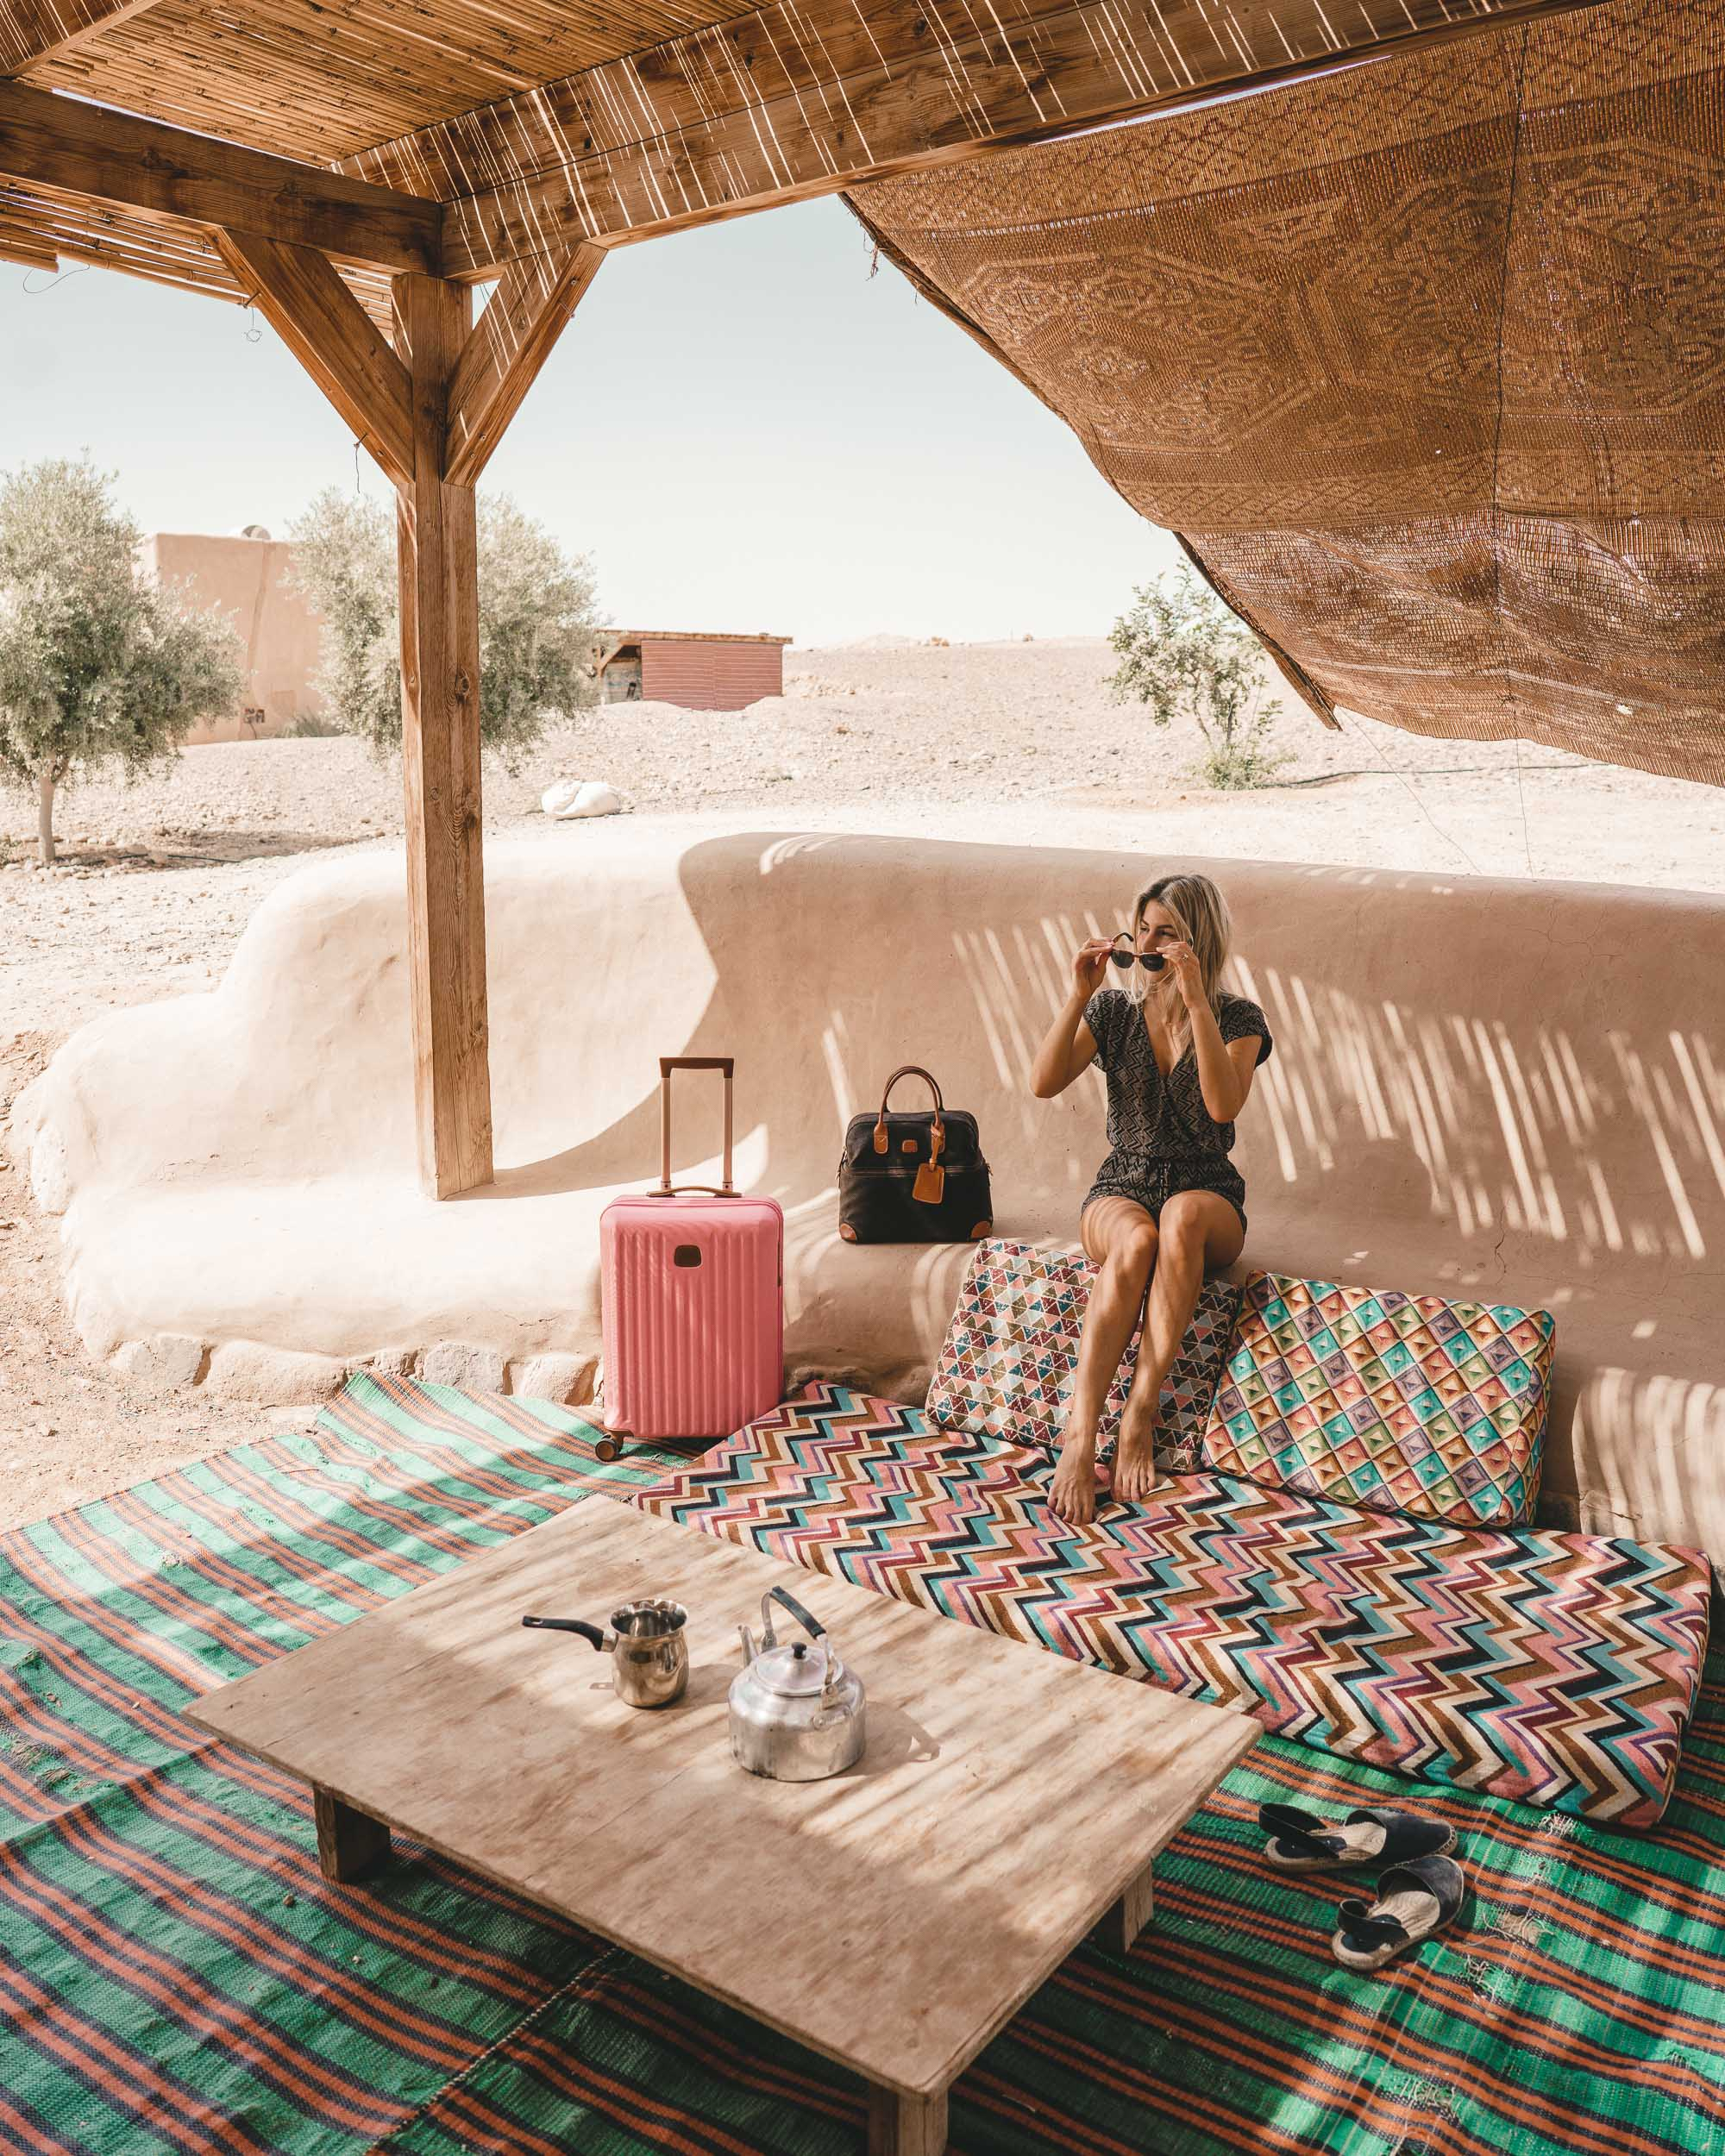 Mud huts at Desert Days camp in the Negev Desert Israel